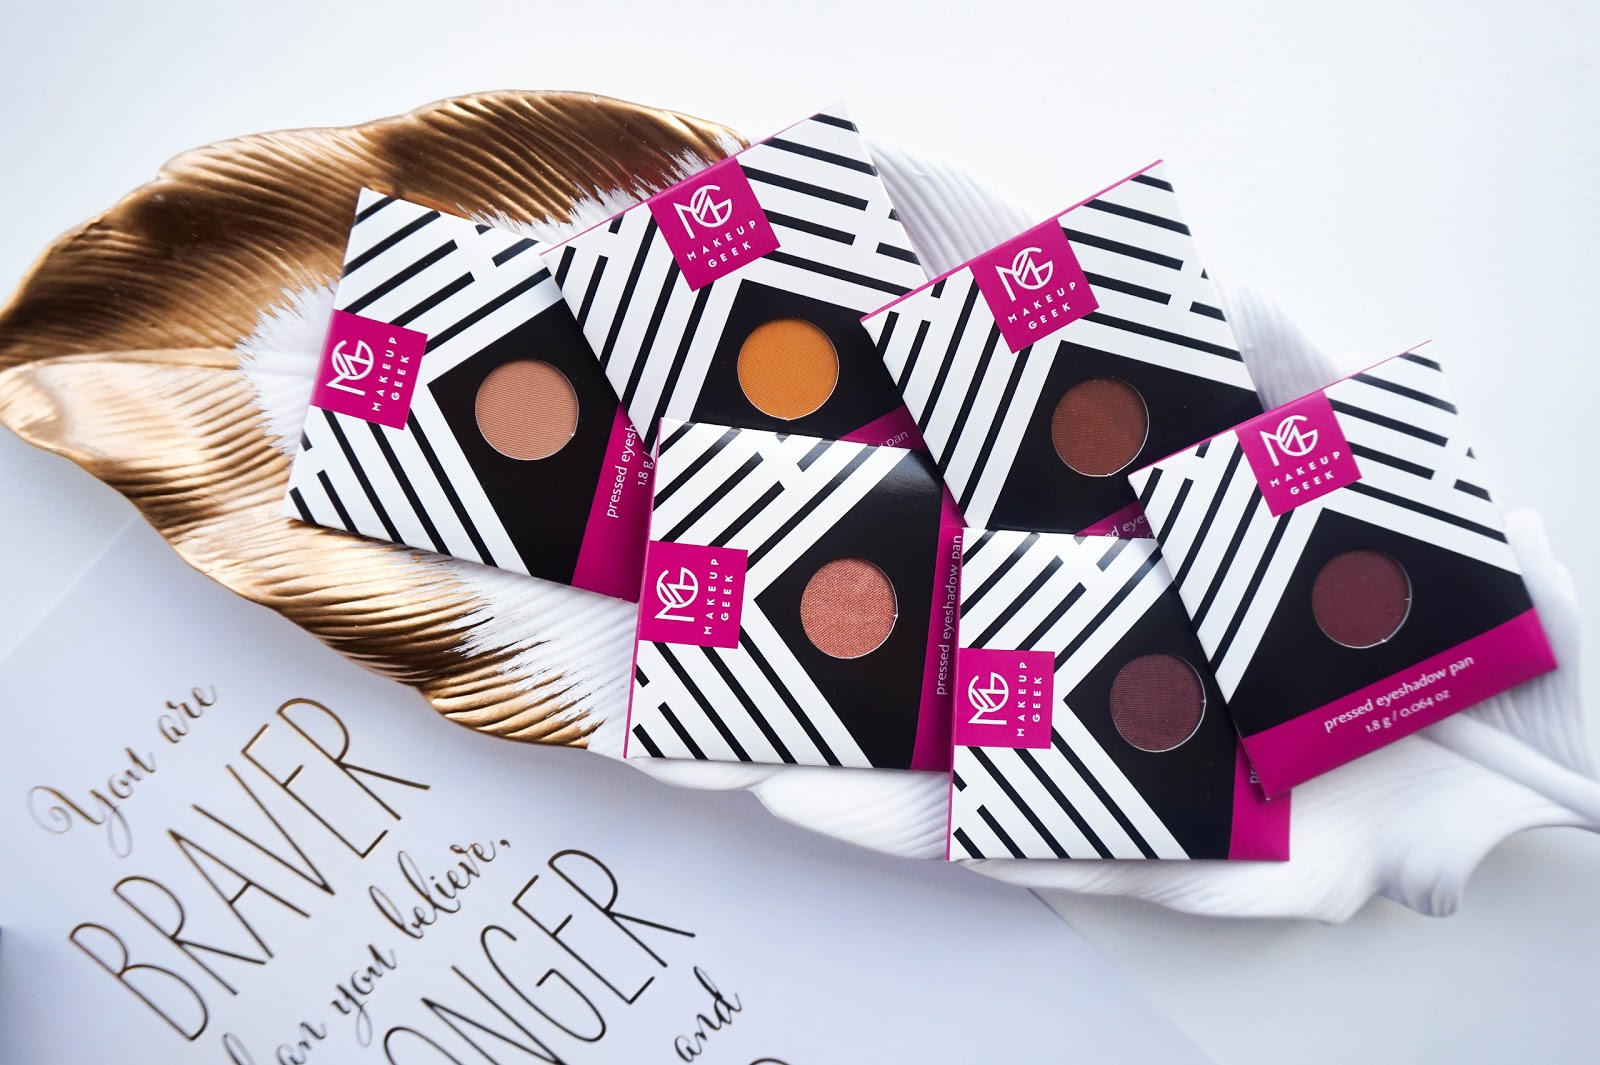 Introducing Makeup Geek Eyeshadows